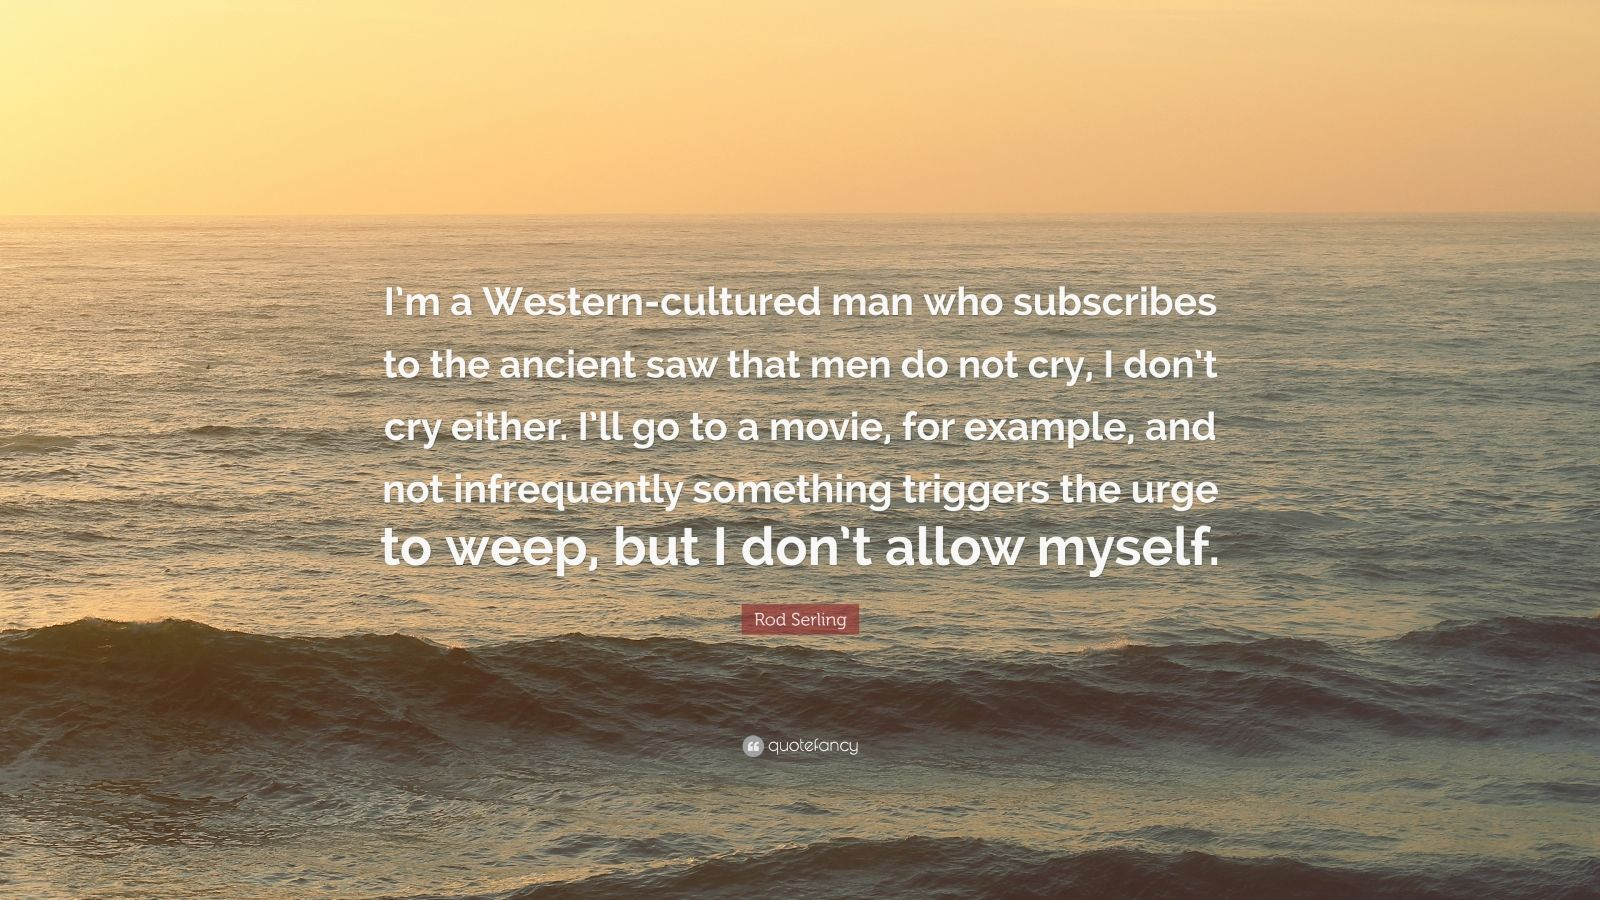 "Rod Serling Quote: ""I'm a Western-cultured man who subscribes to the ancient saw that men do not cry, I don't cry either. I'll go to a movie, for example, and not infrequently something triggers the urge to weep, but I don't allow myself."""